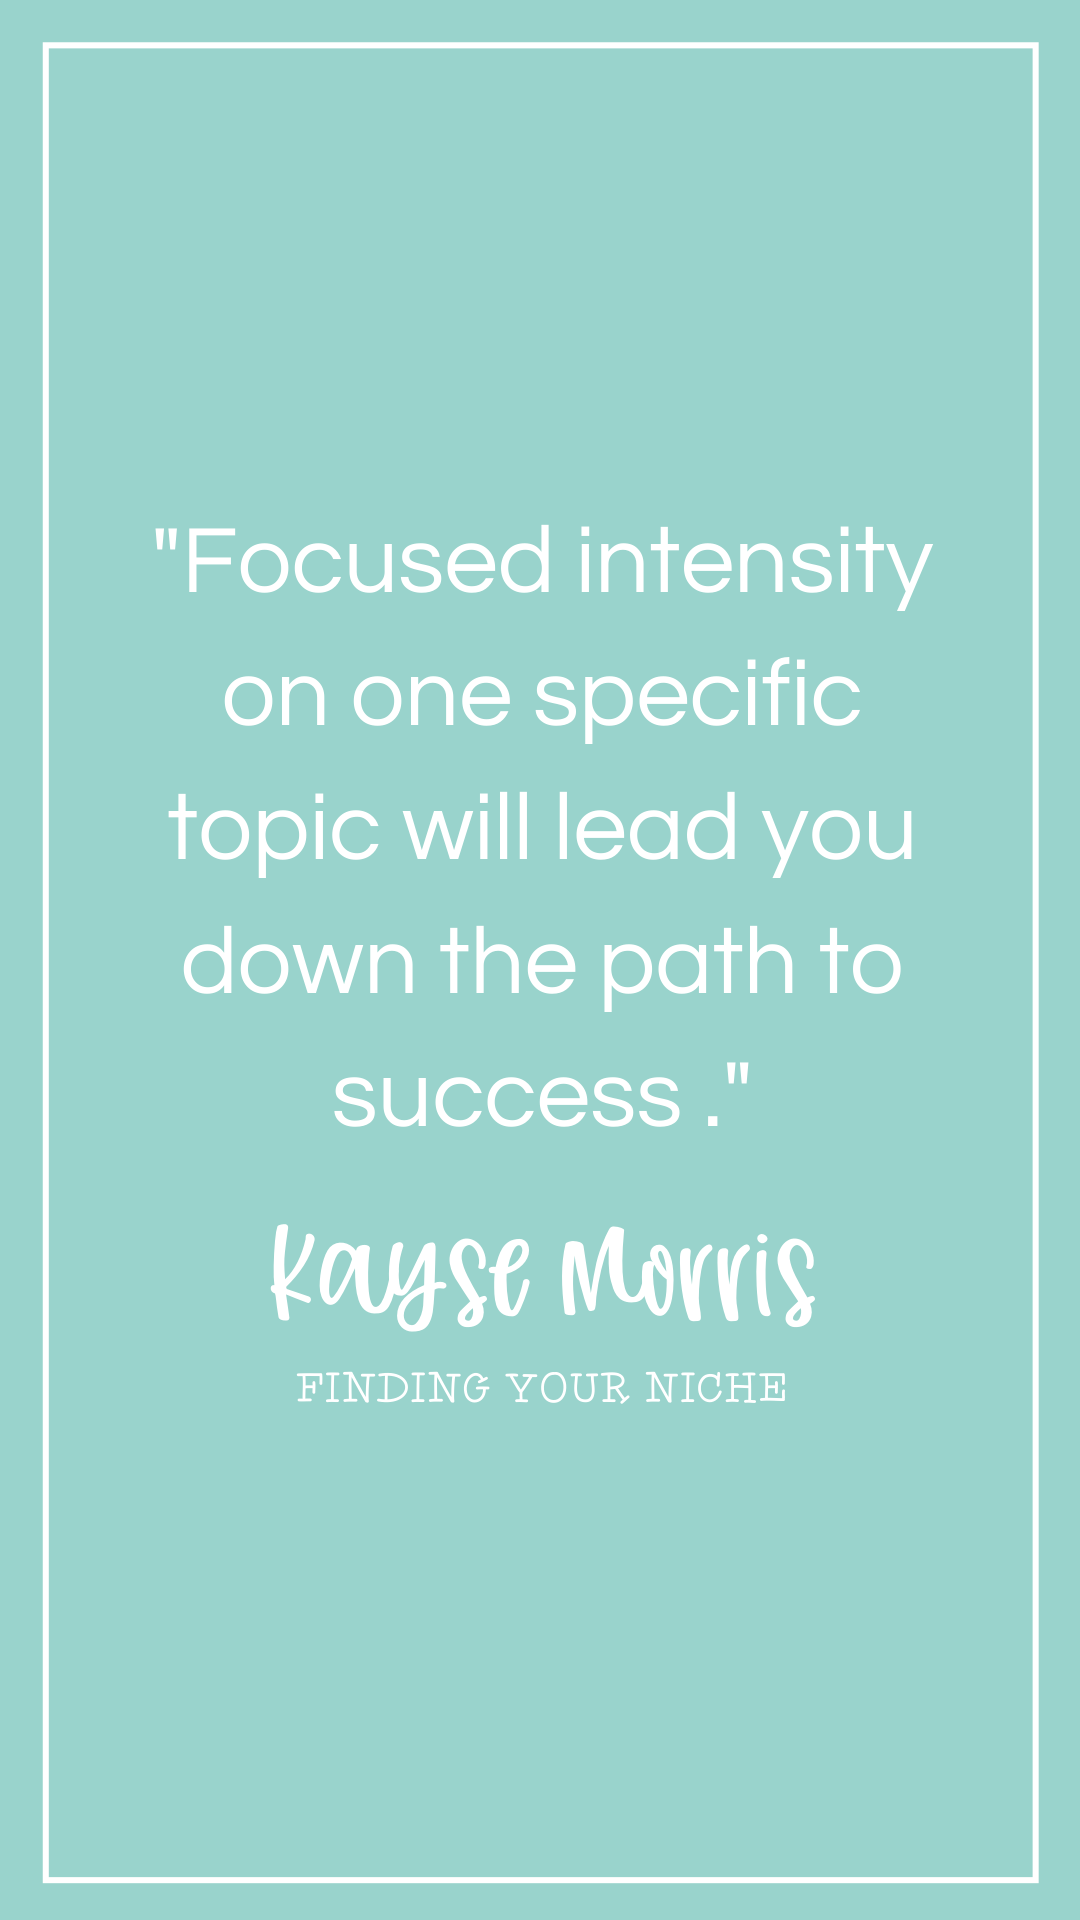 Finding Your Niche Kayse Morris In